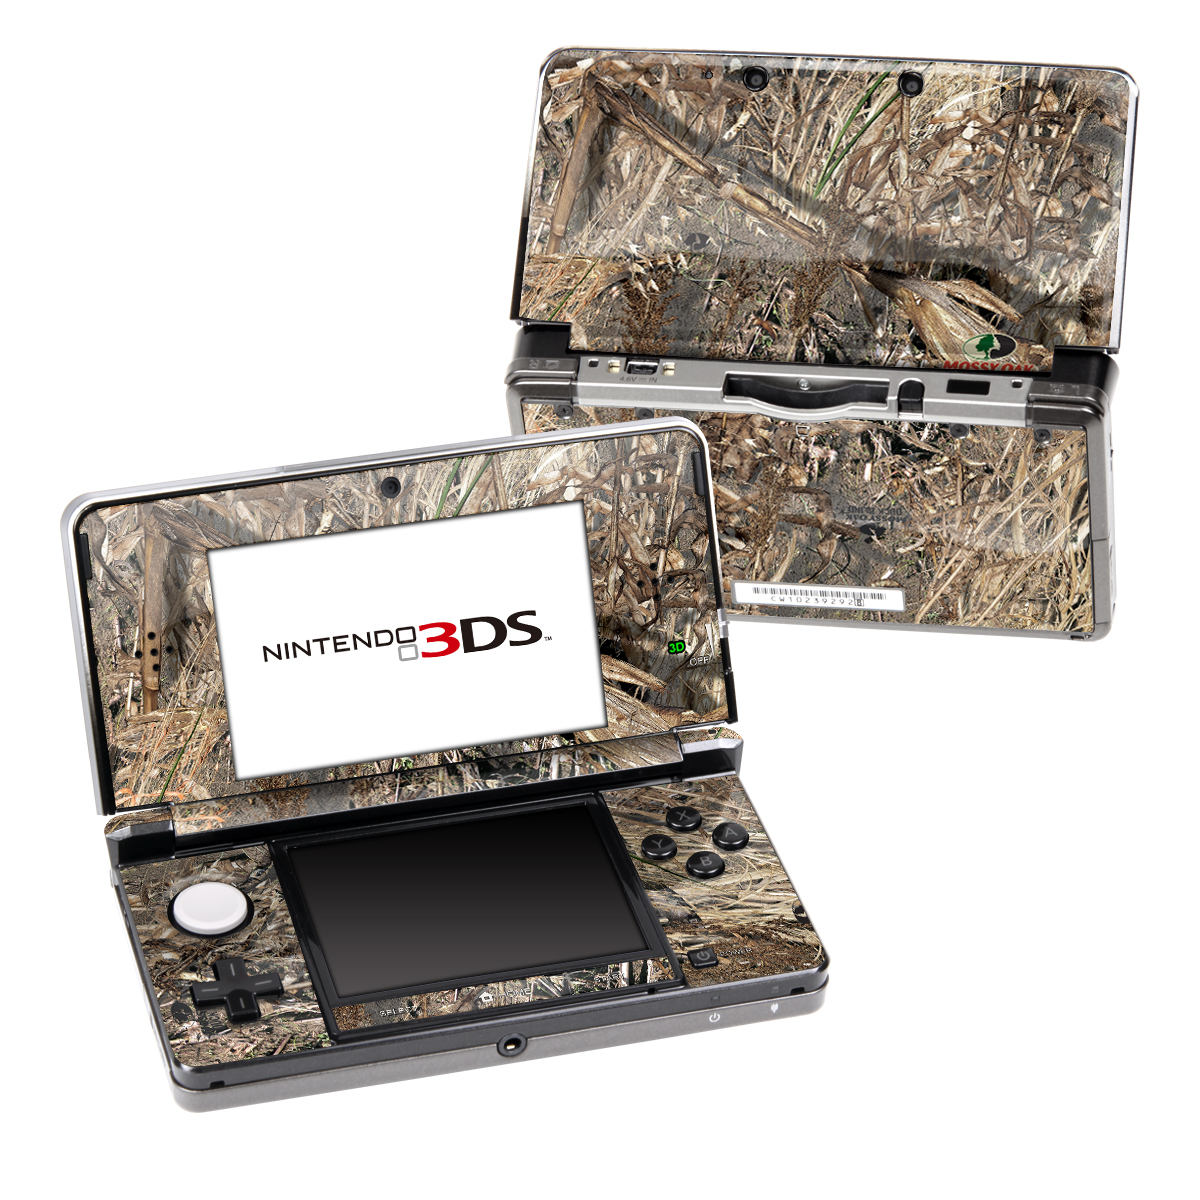 Duck Blind Nintendo 3DS Skin